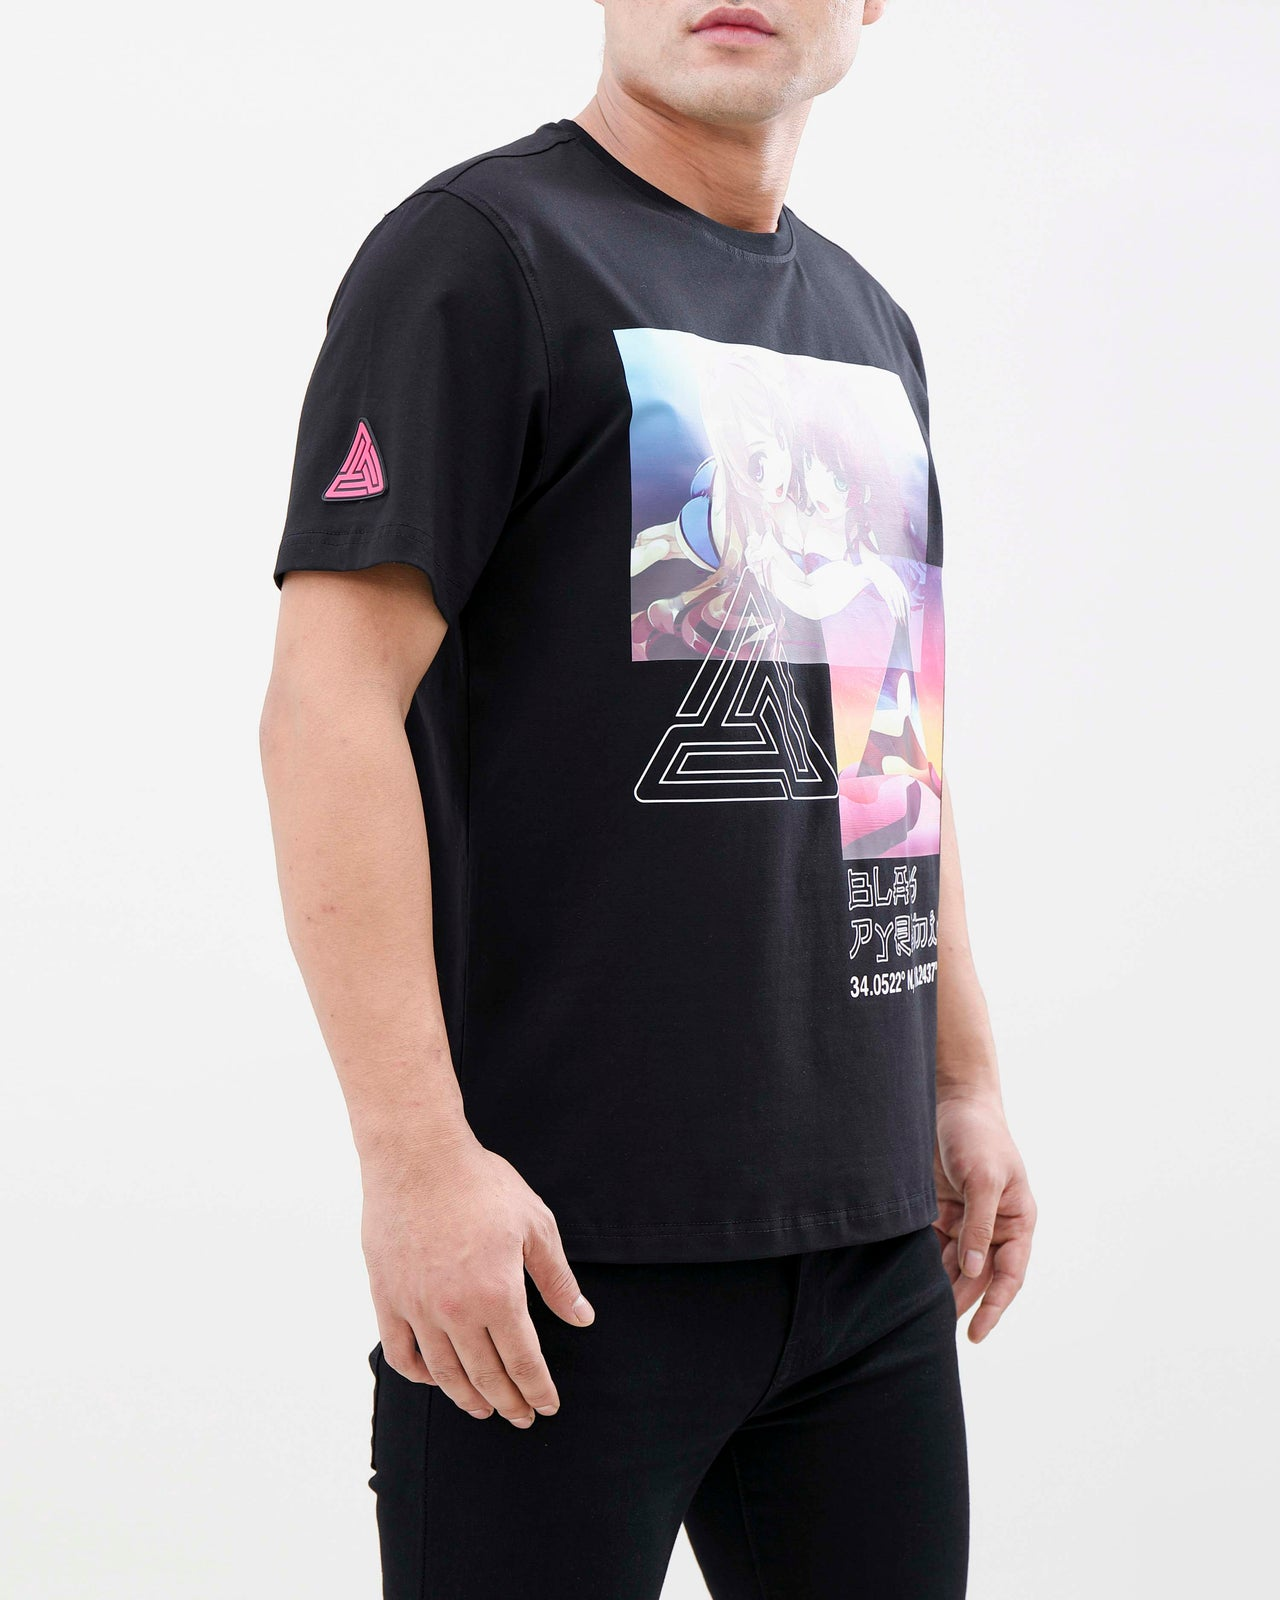 TOUCH THE PYRAMID SHIRT-COLOR: BLACK